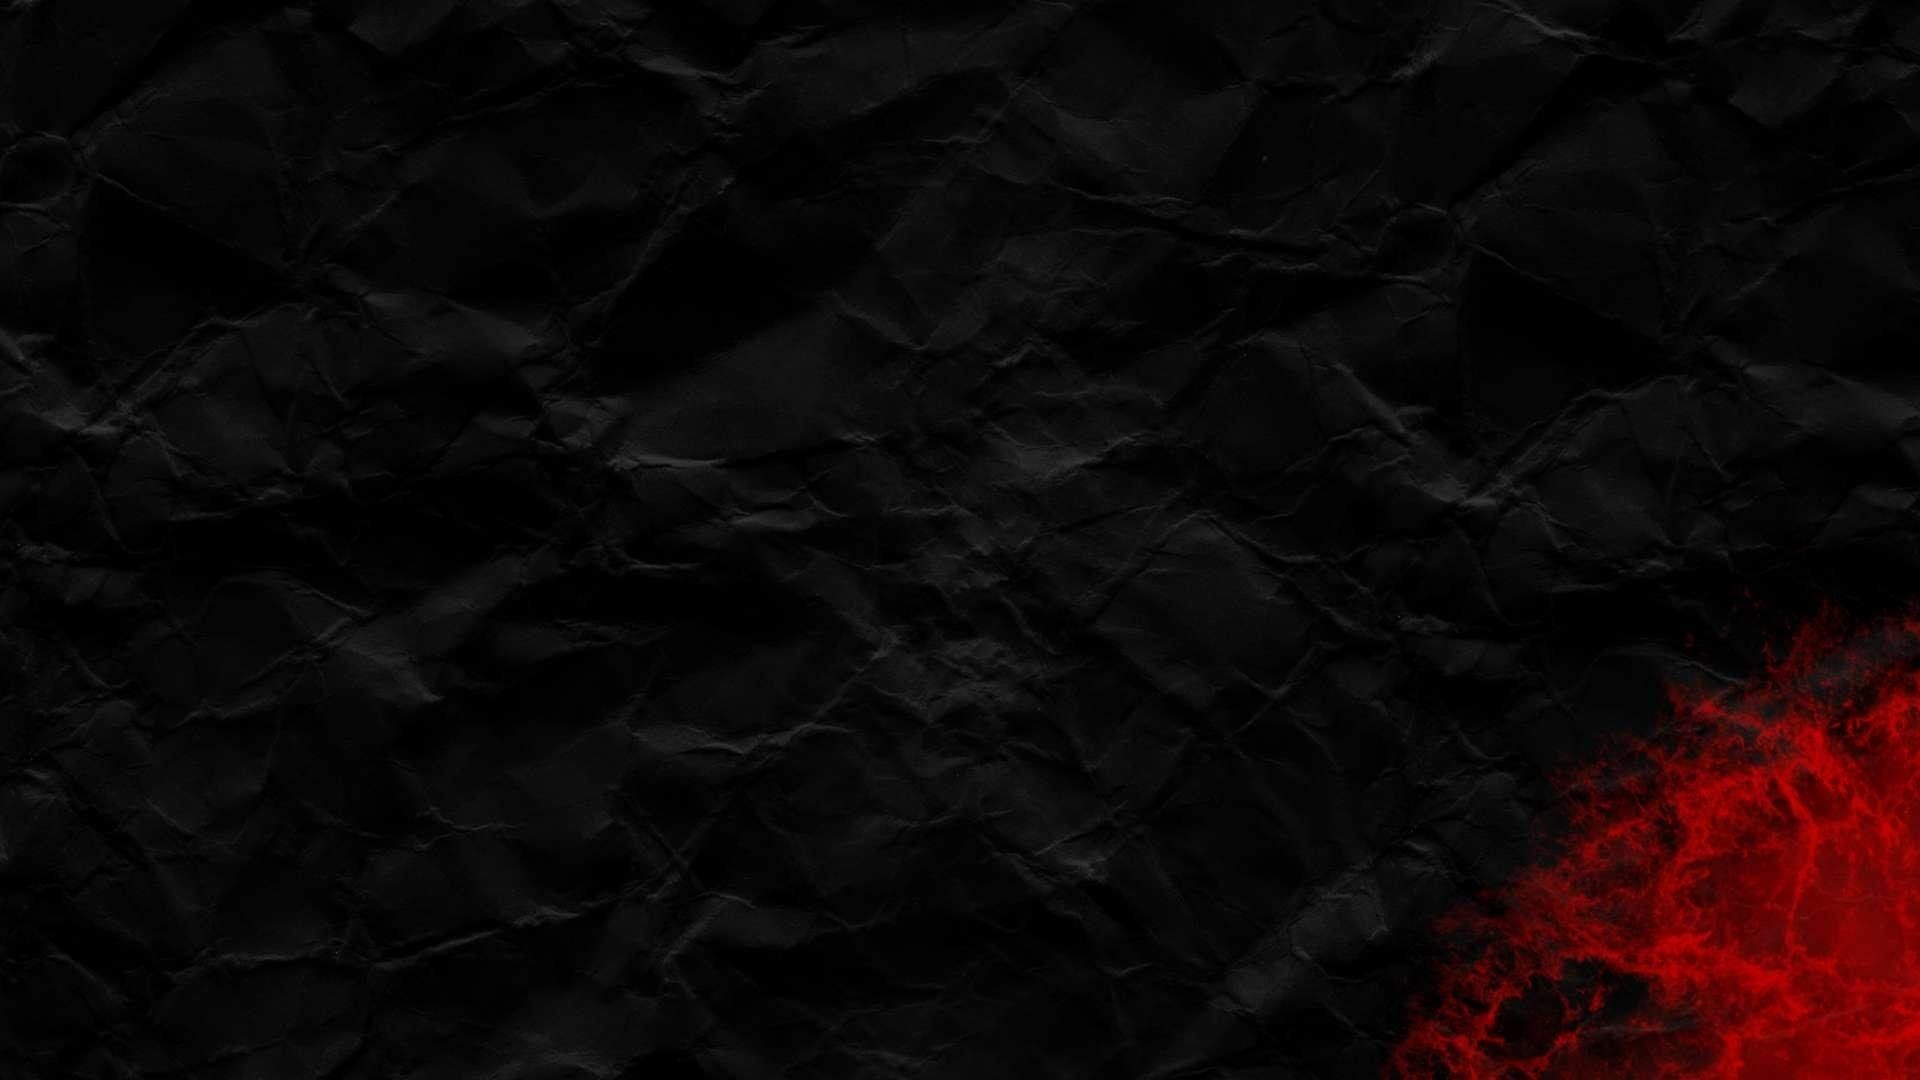 2560x1440 Cgi Cube Black Red Wallpapers Hd Desktop And Mobile Backgrounds